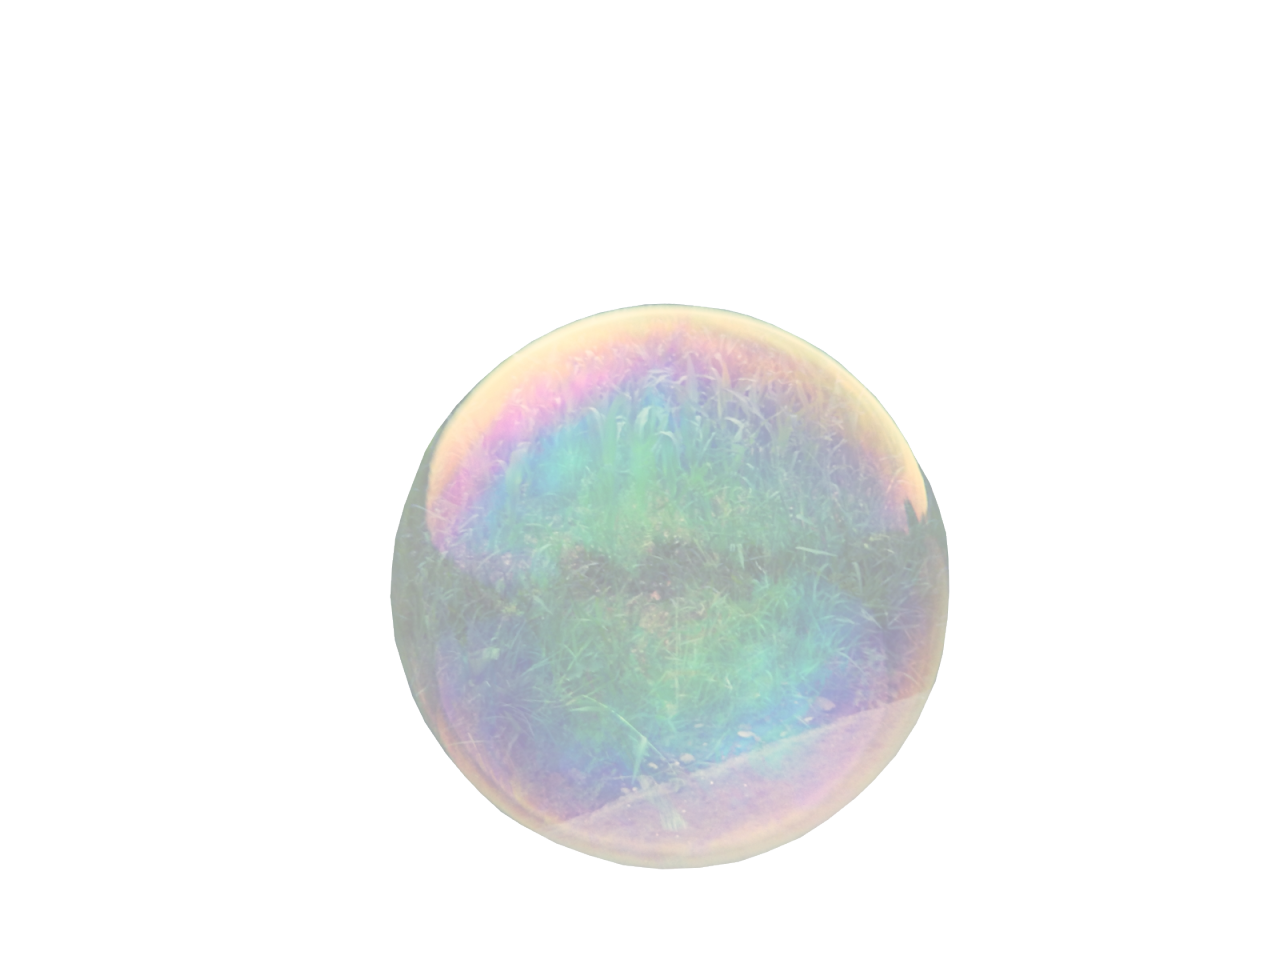 Soap Bubble Png image #44357